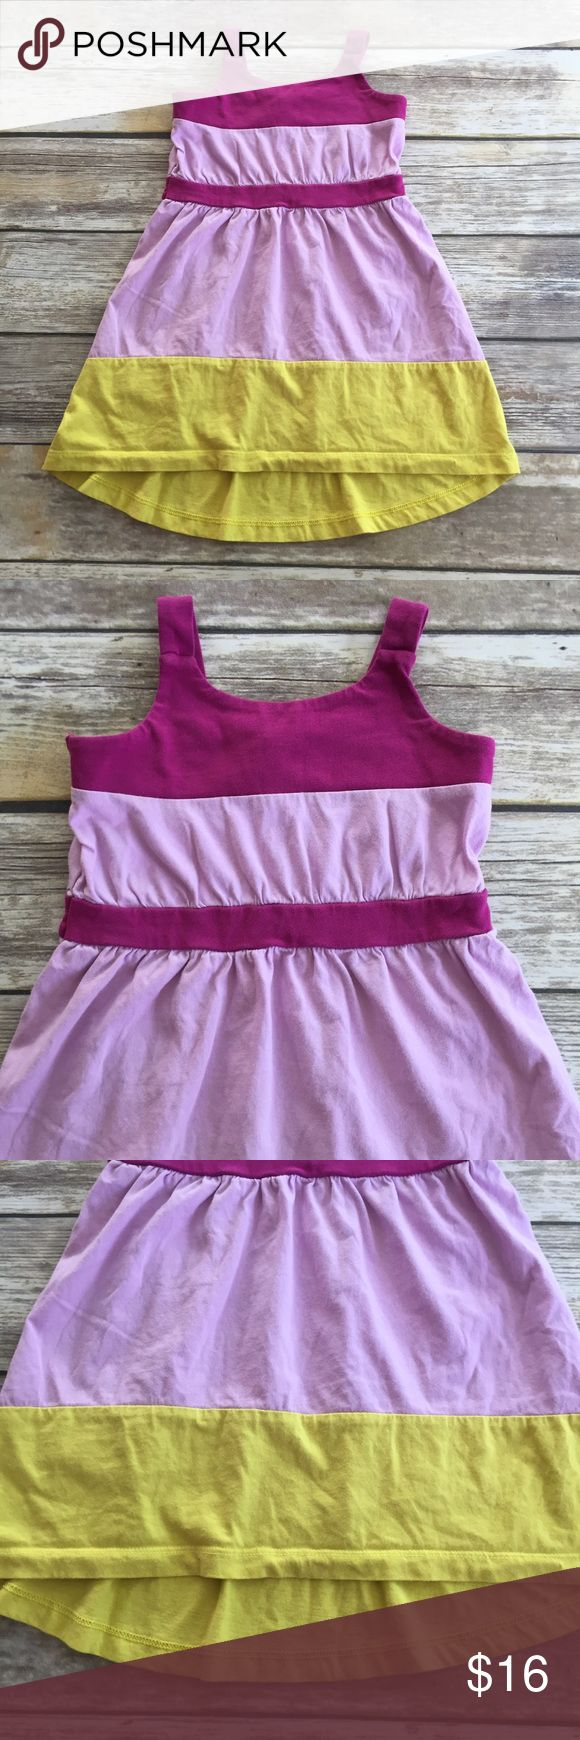 Tea Collection Hi-Lo Dress Taza Hi-Lo dress from Tea Collections Morocco destination. Color-blocked Sundress in purple yellow and lavender. EUC Tea Collection Dresses